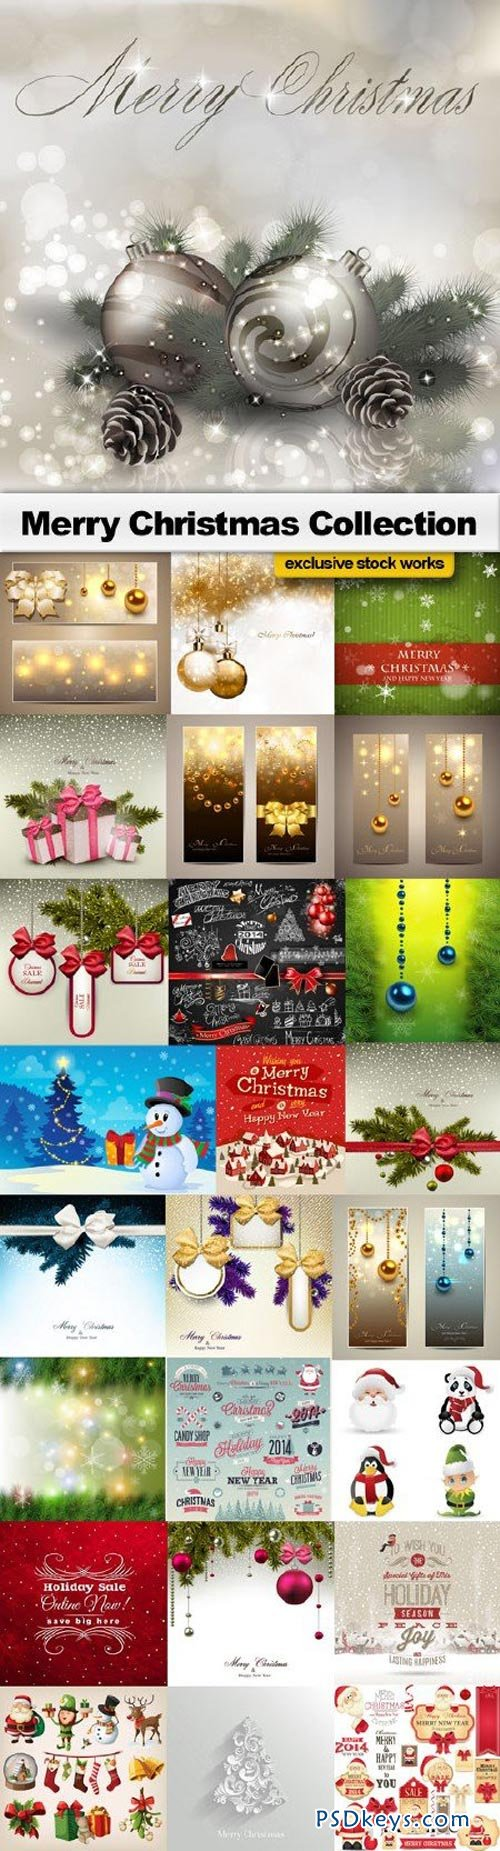 Merry Christmas Collection - 25xEPS